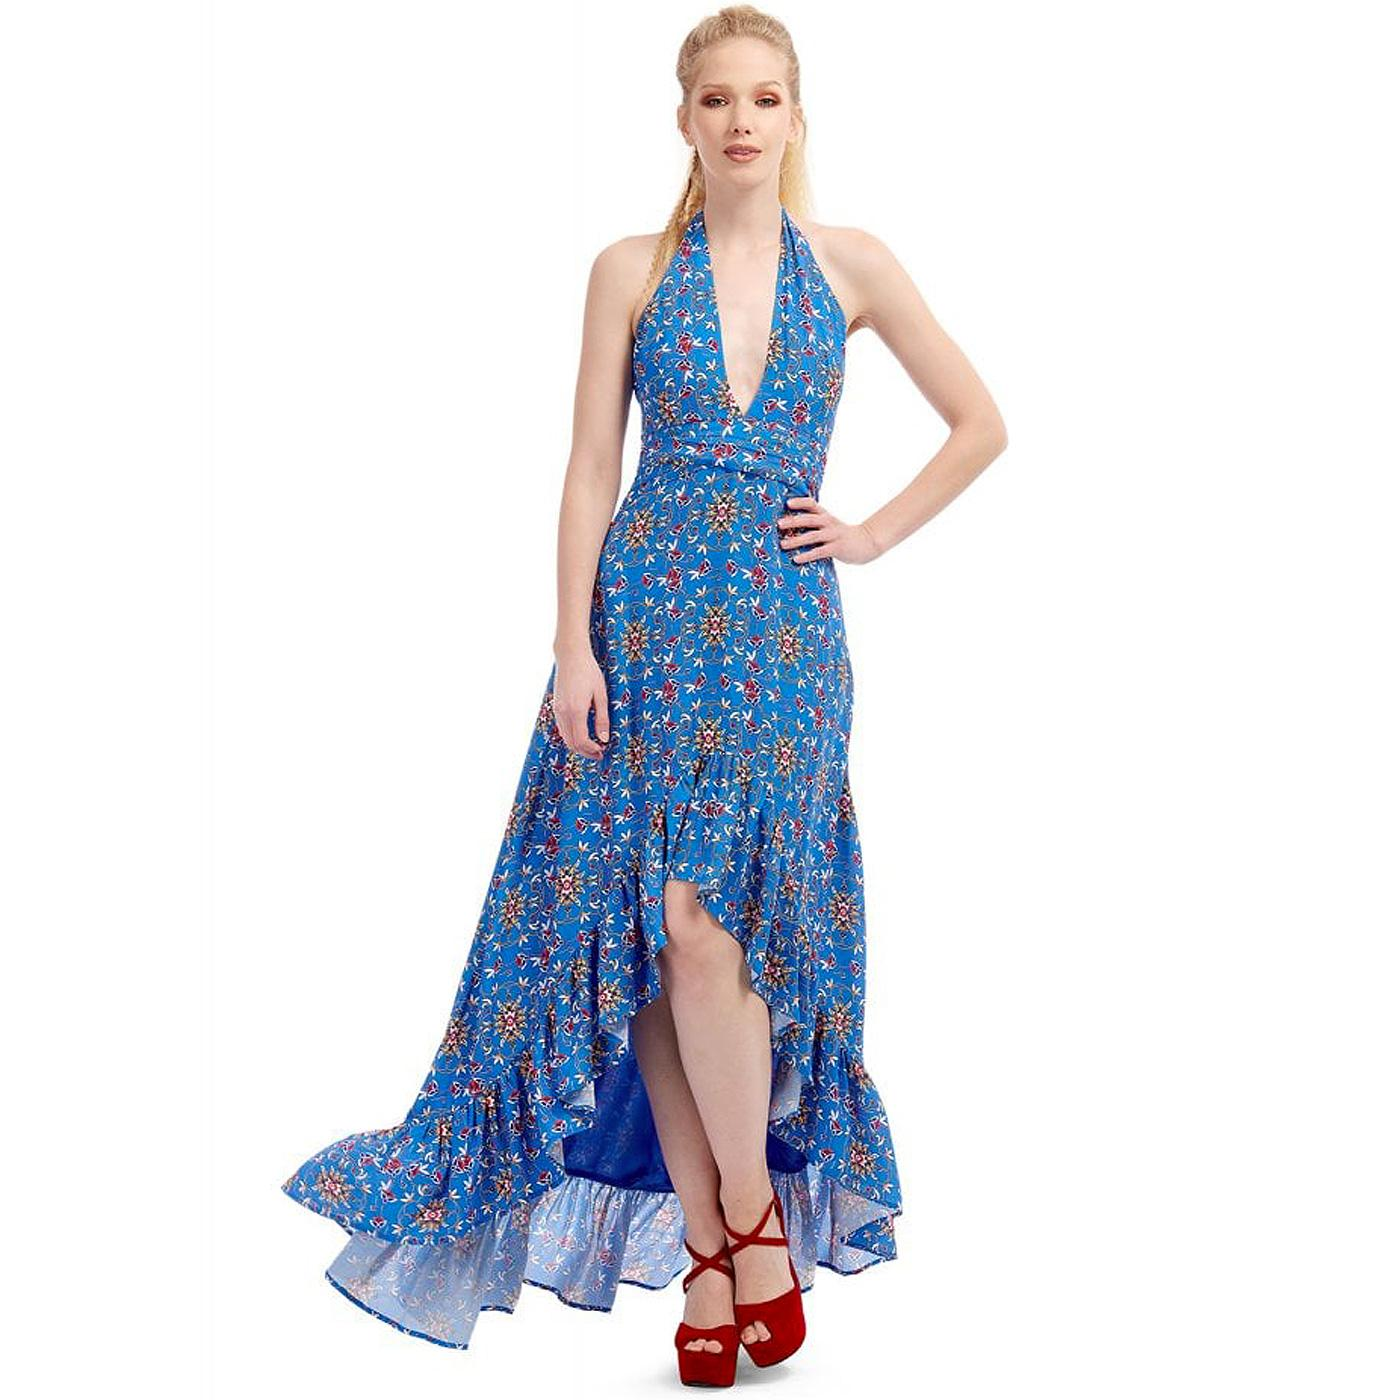 Bella BRIGHT & BEAUTIFUL Retro 70s Maxi Dress